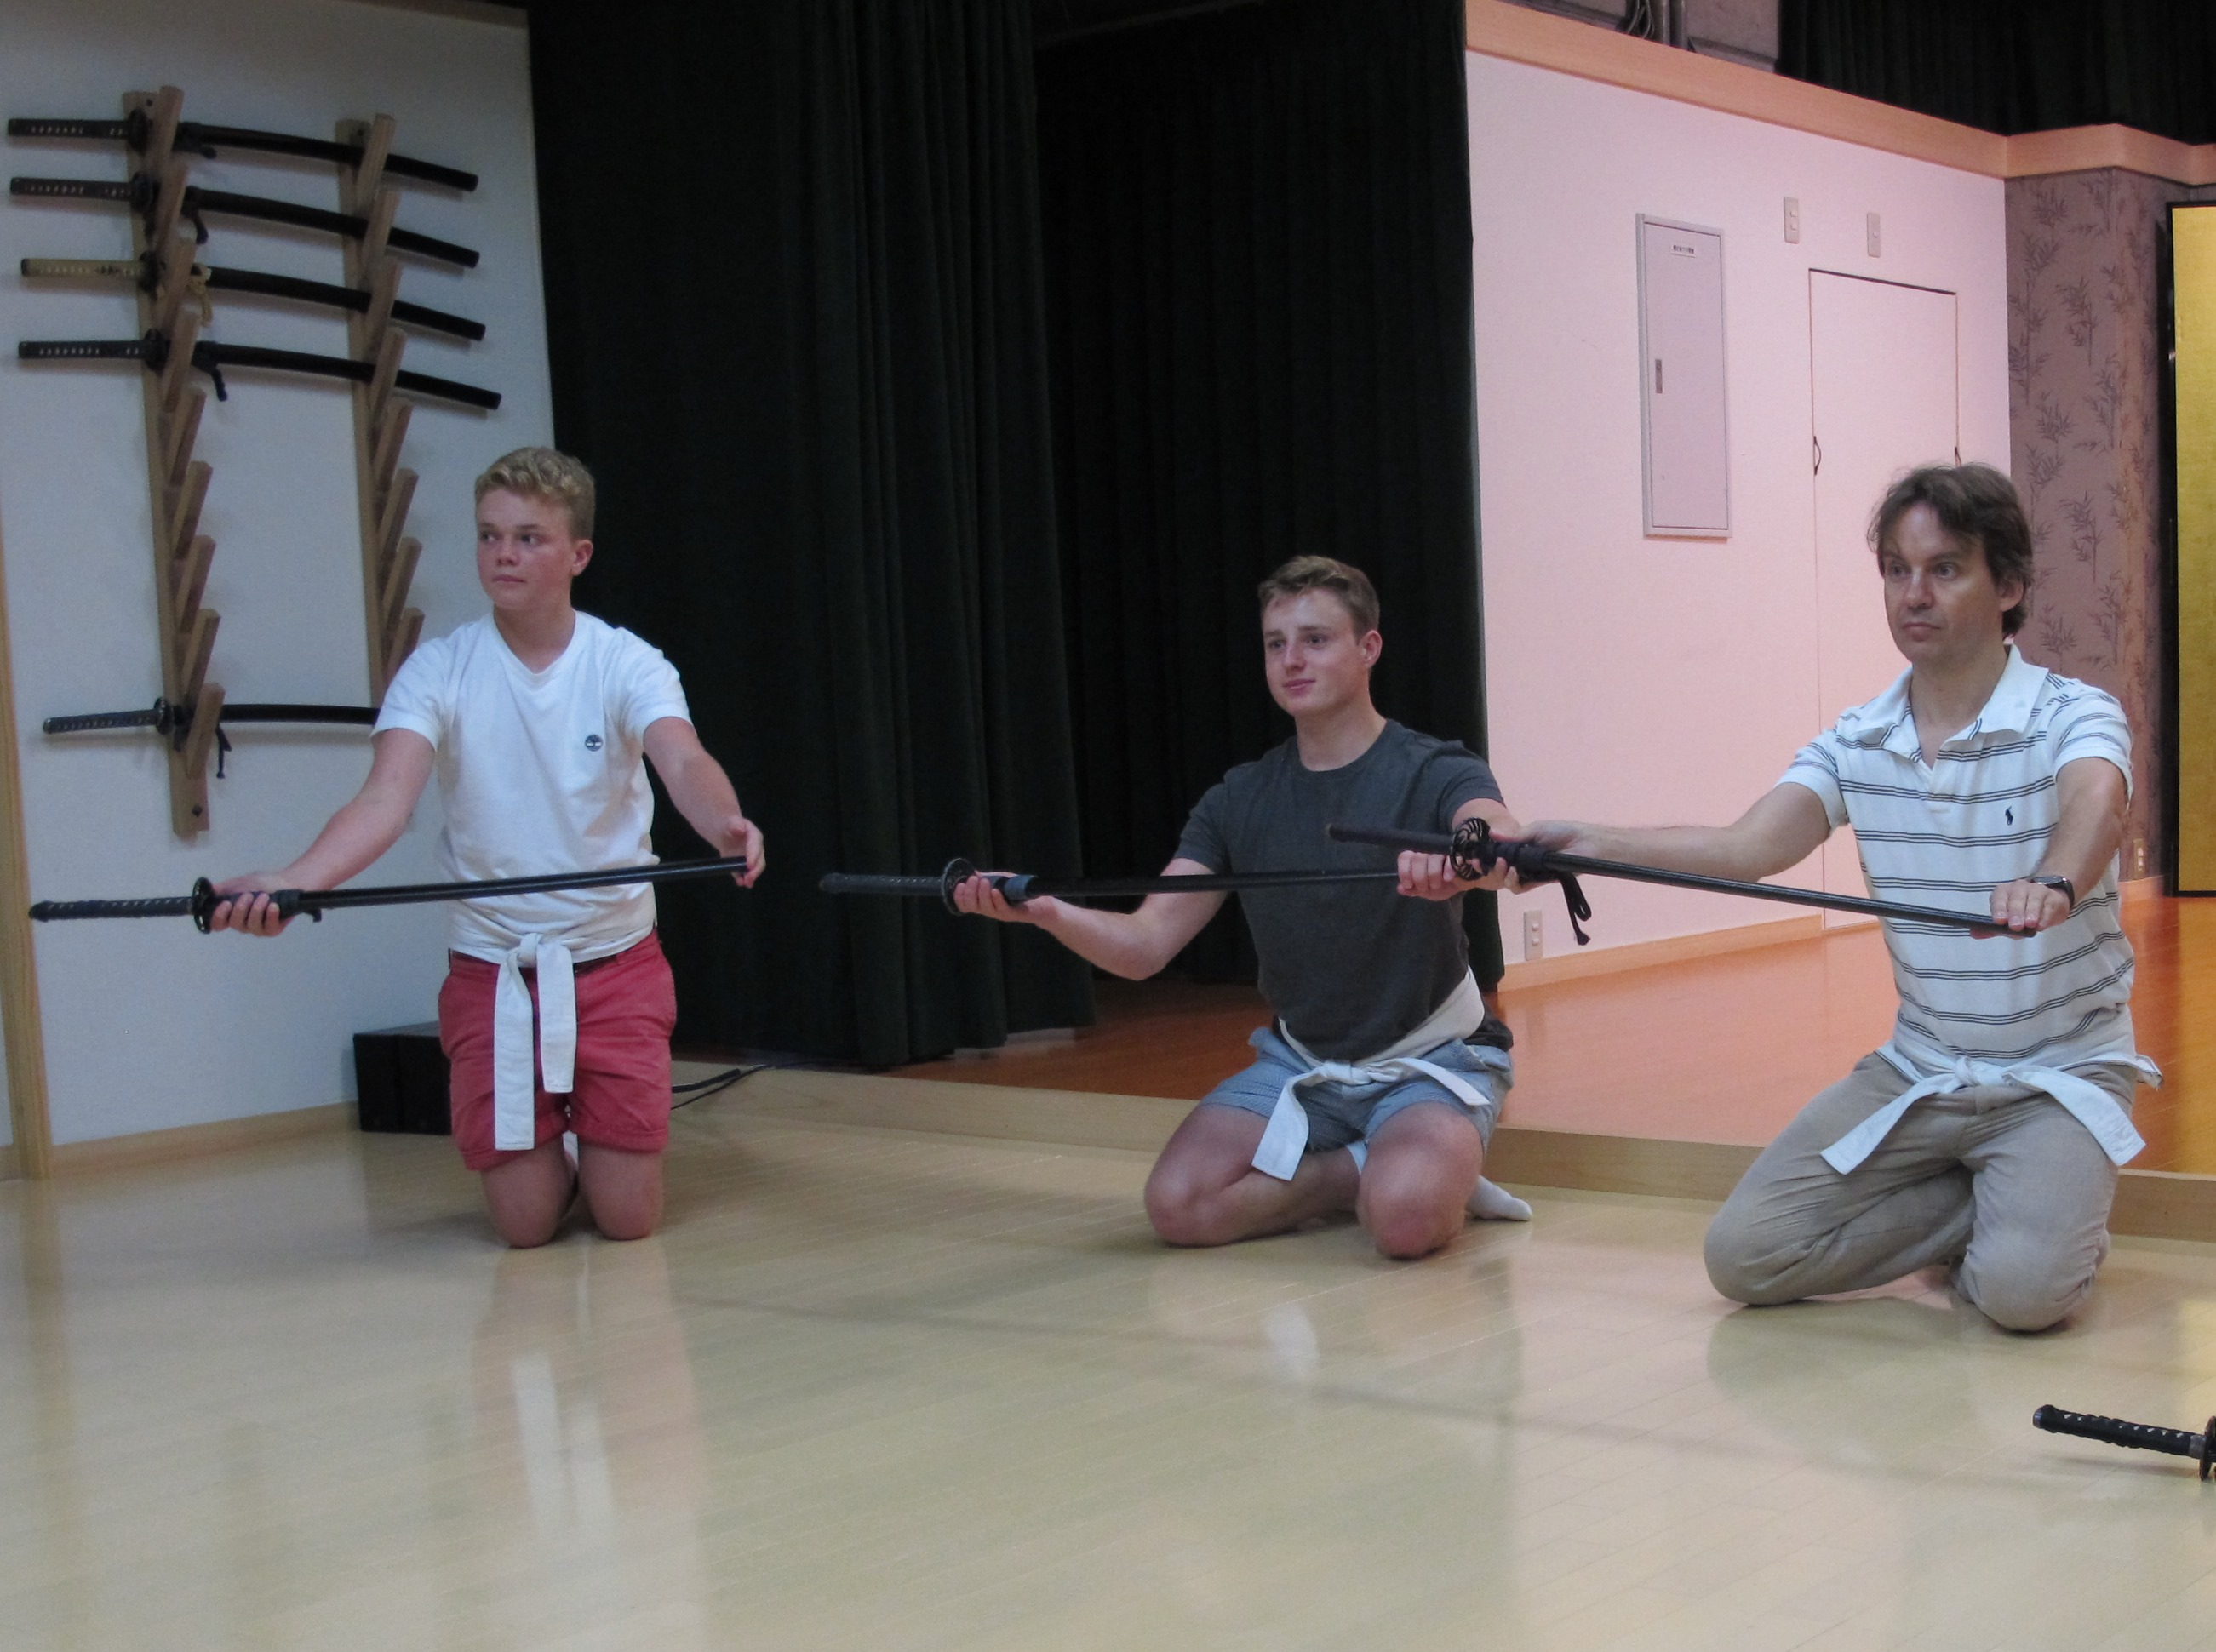 Learning how to present your sword